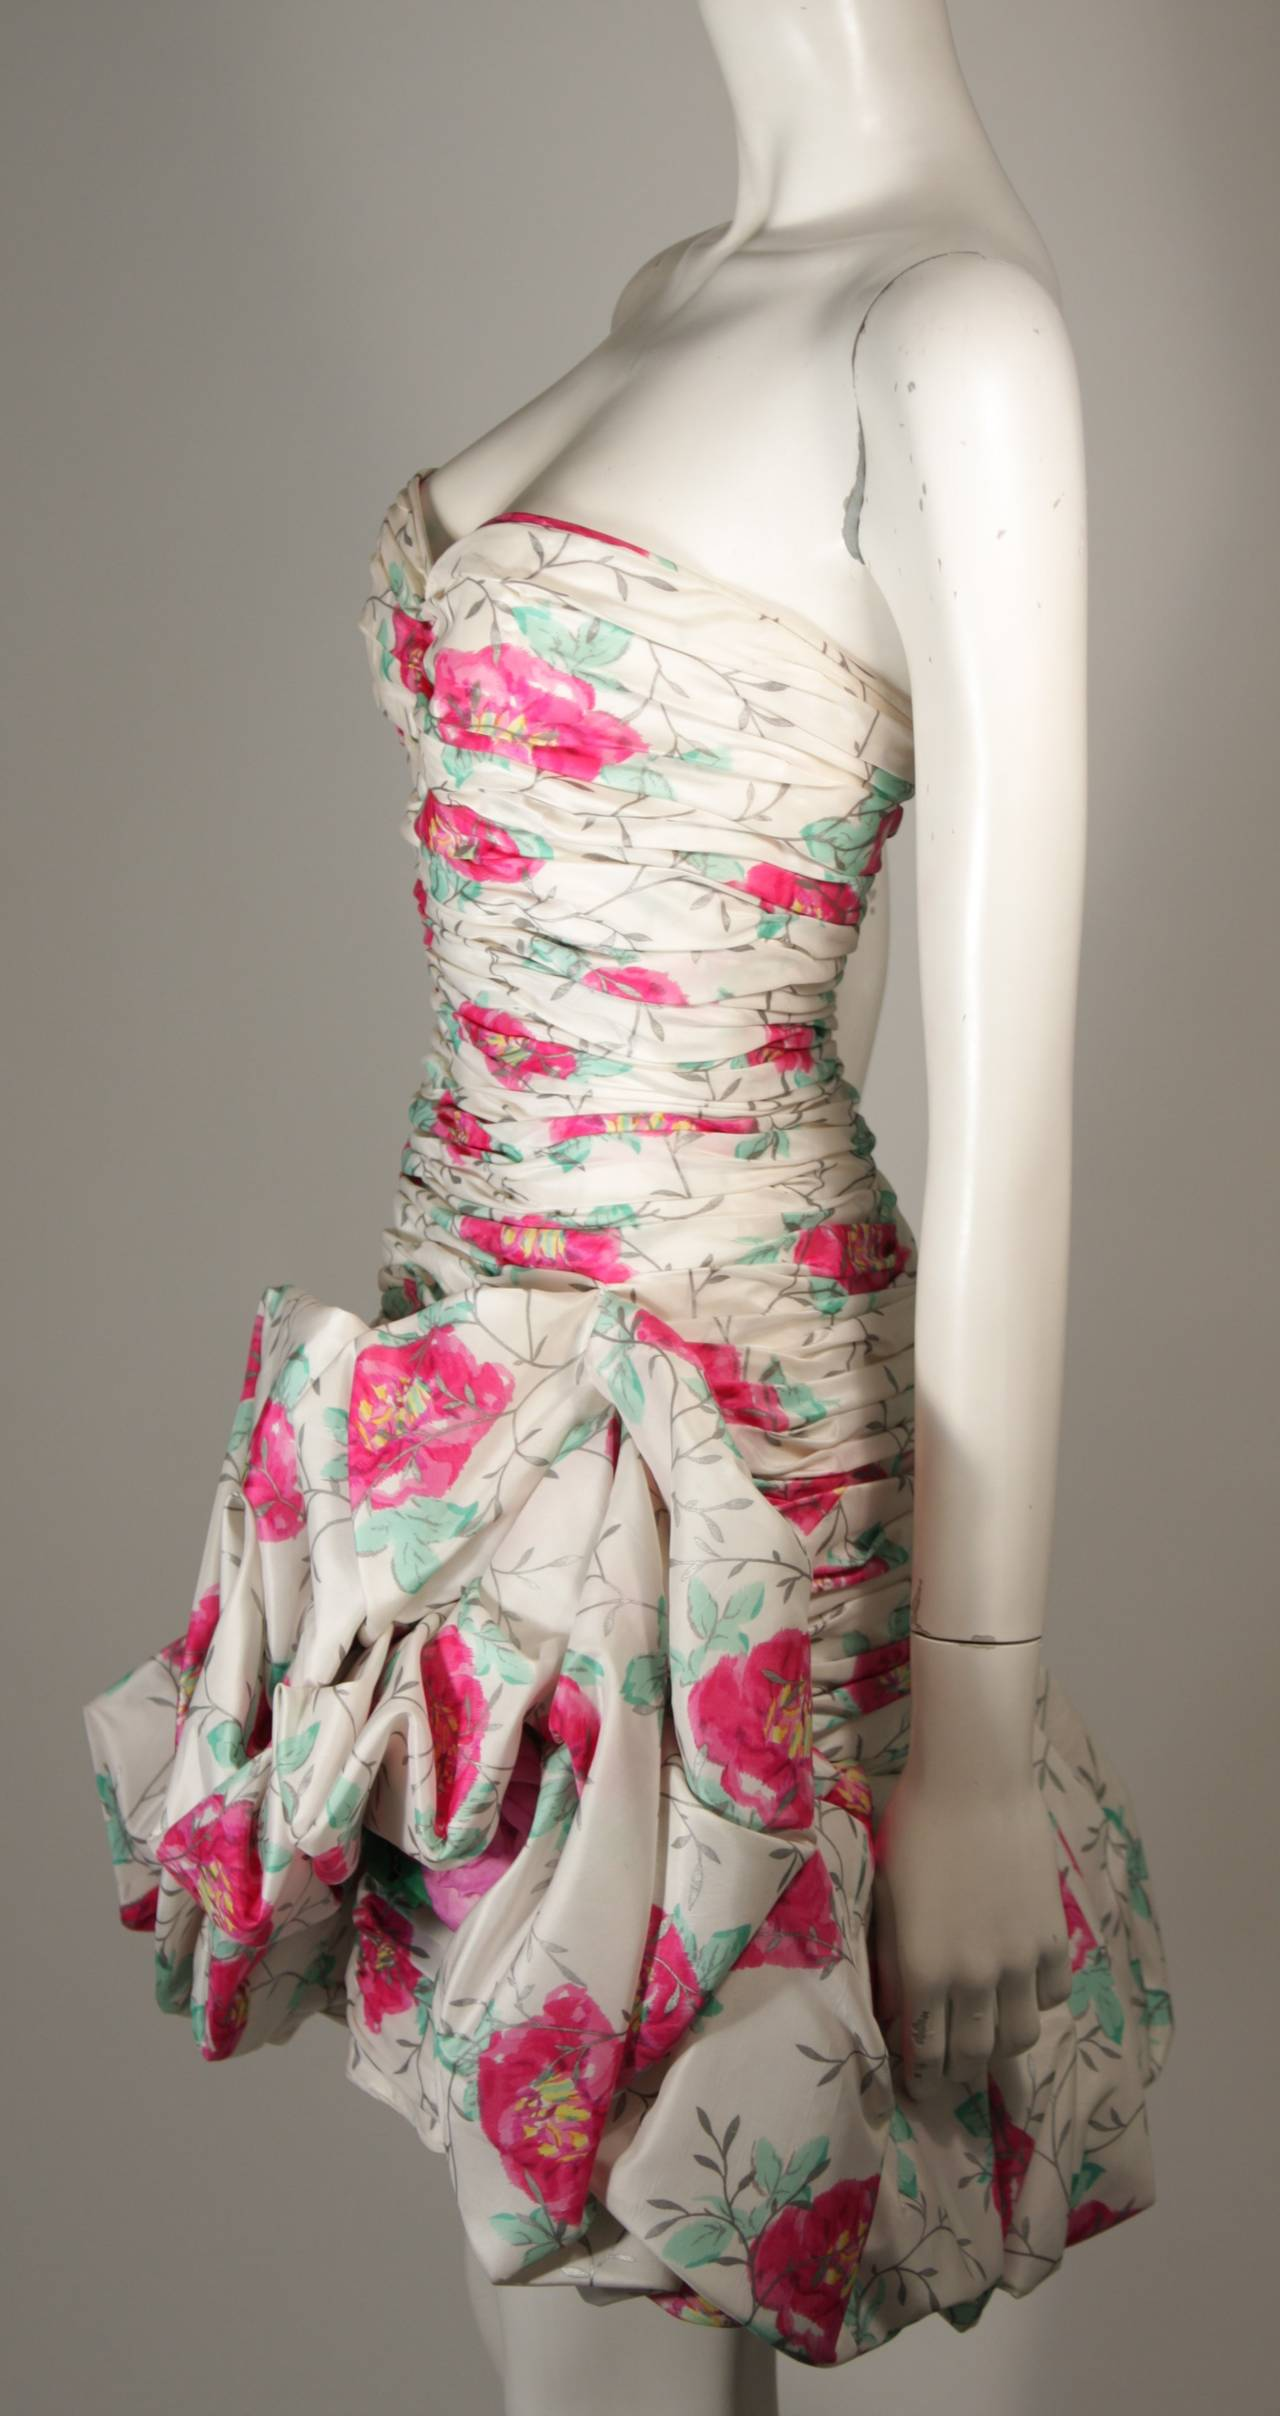 Ungaro White Silk Cocktail Dress with Pink & Green Floral Design Size 8 For Sale 1